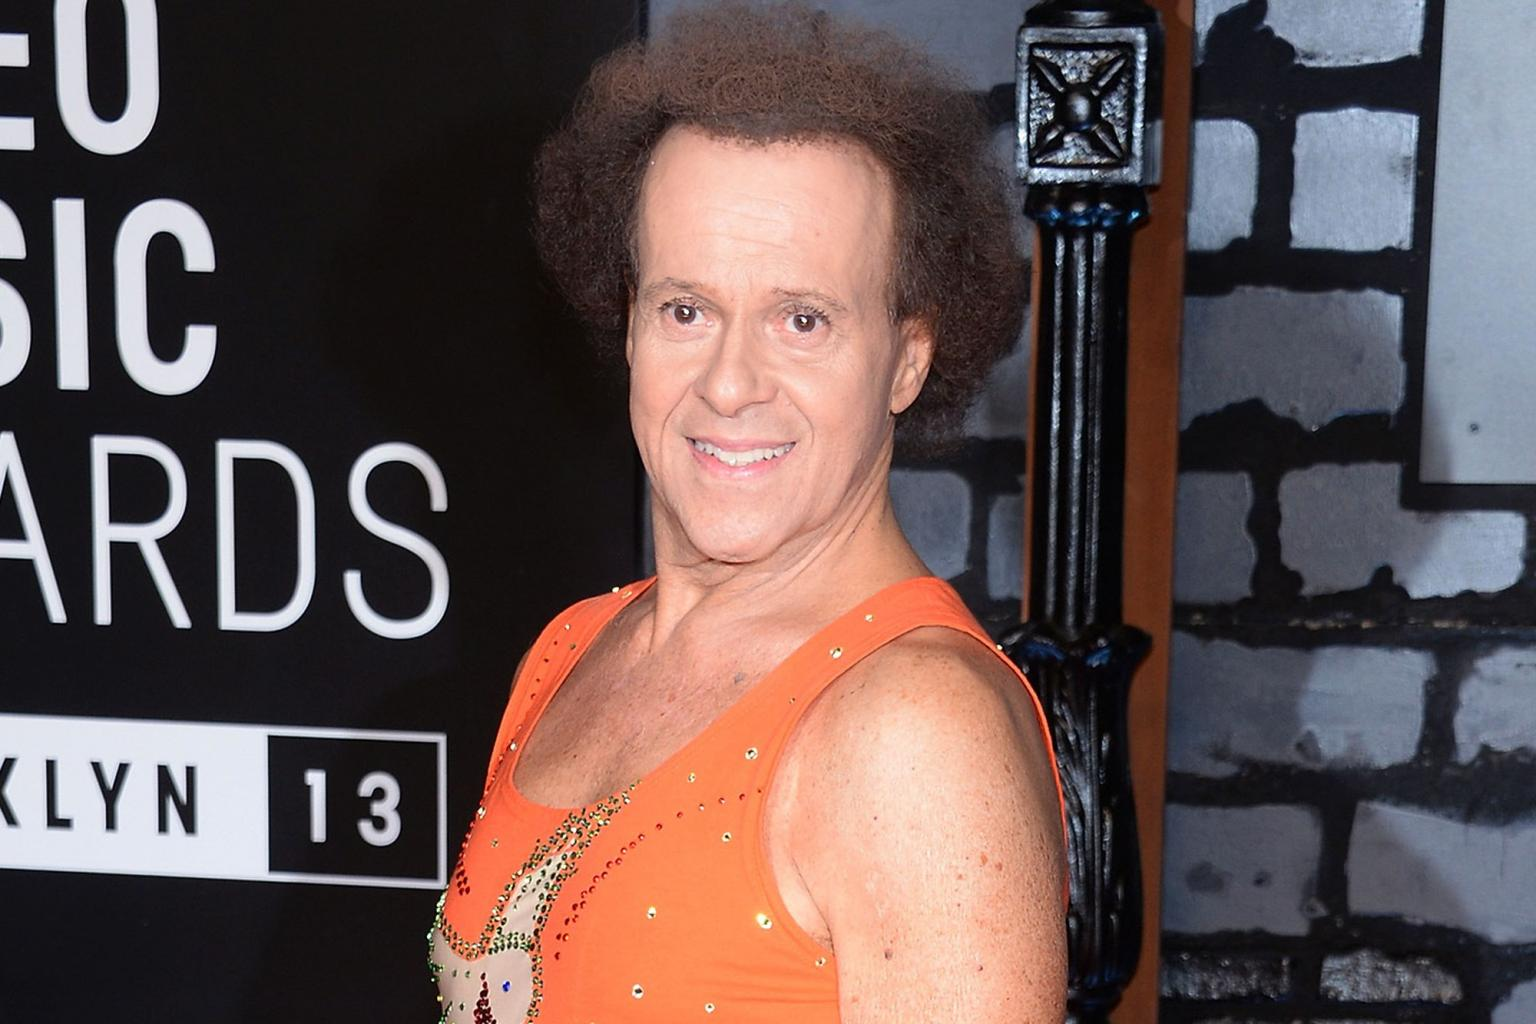 Richard Simmons Planning to Sue for Alleged 'Hurtful Campaign of Defamations and Privacy Invasions'